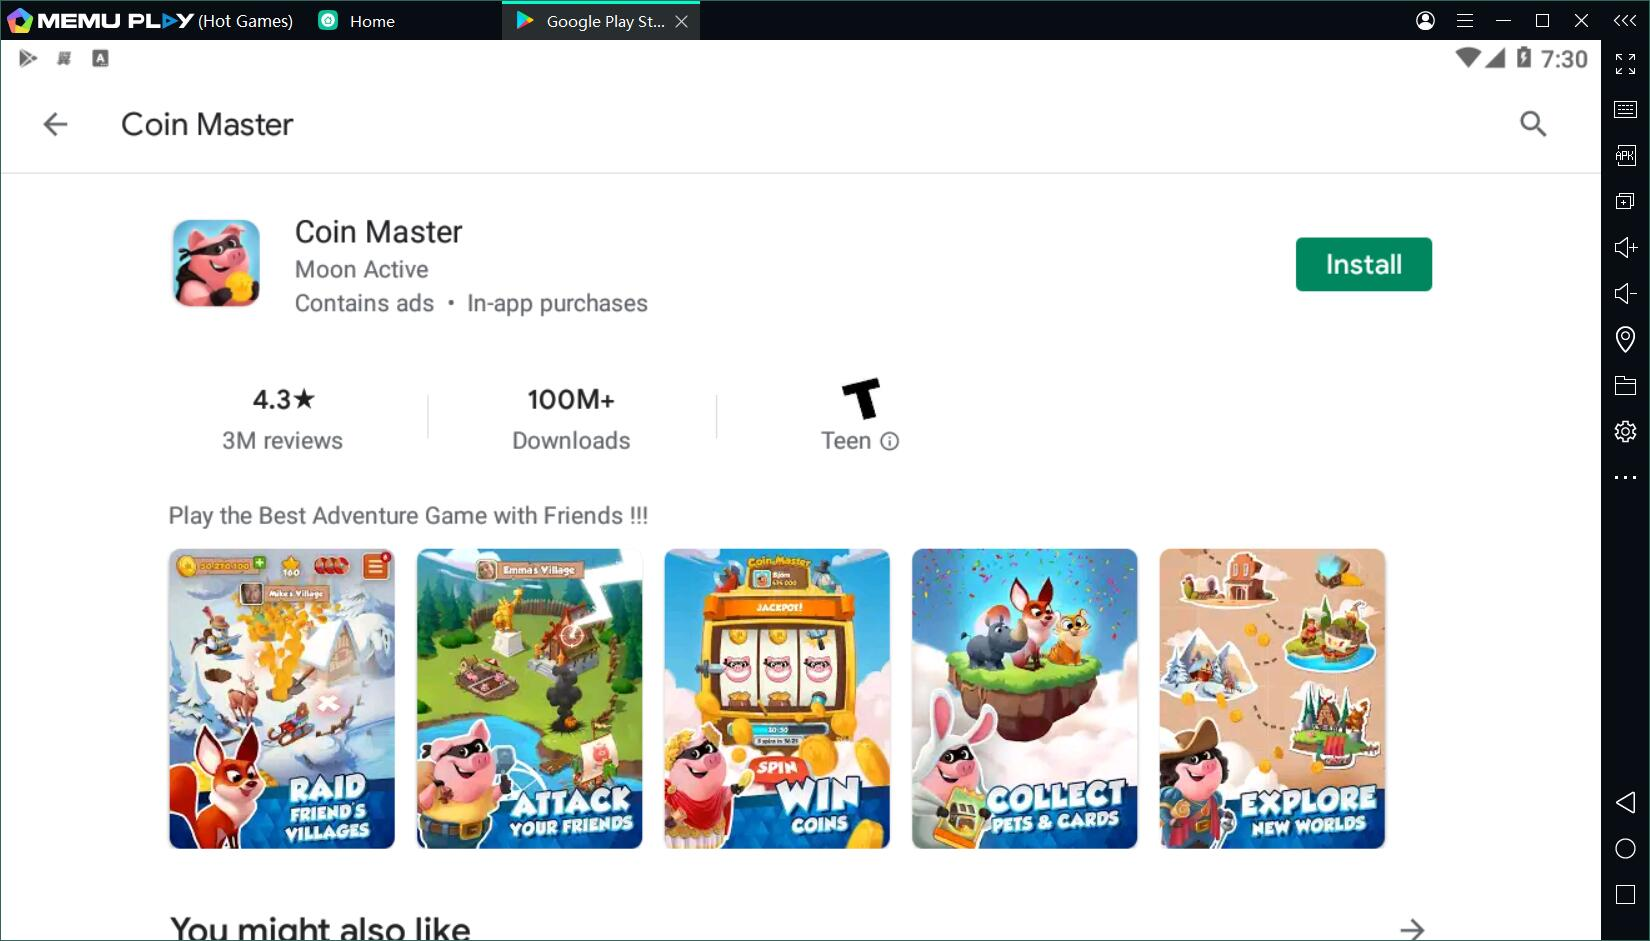 Coin master free link today